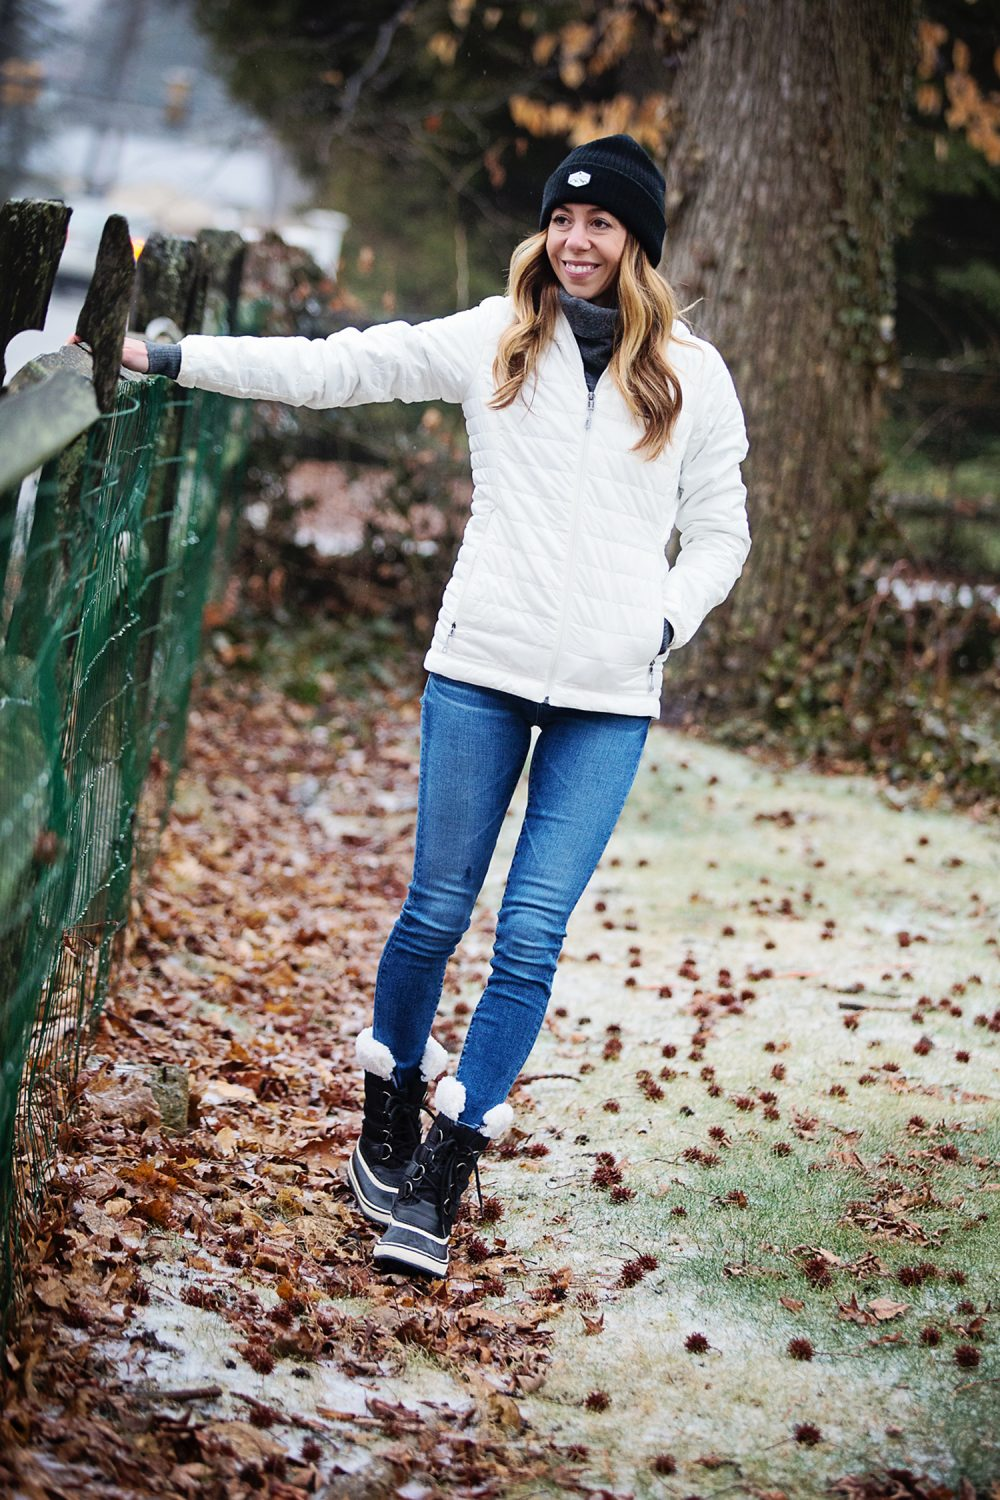 The Motherchic wearing patagonia jacket and sorel boots